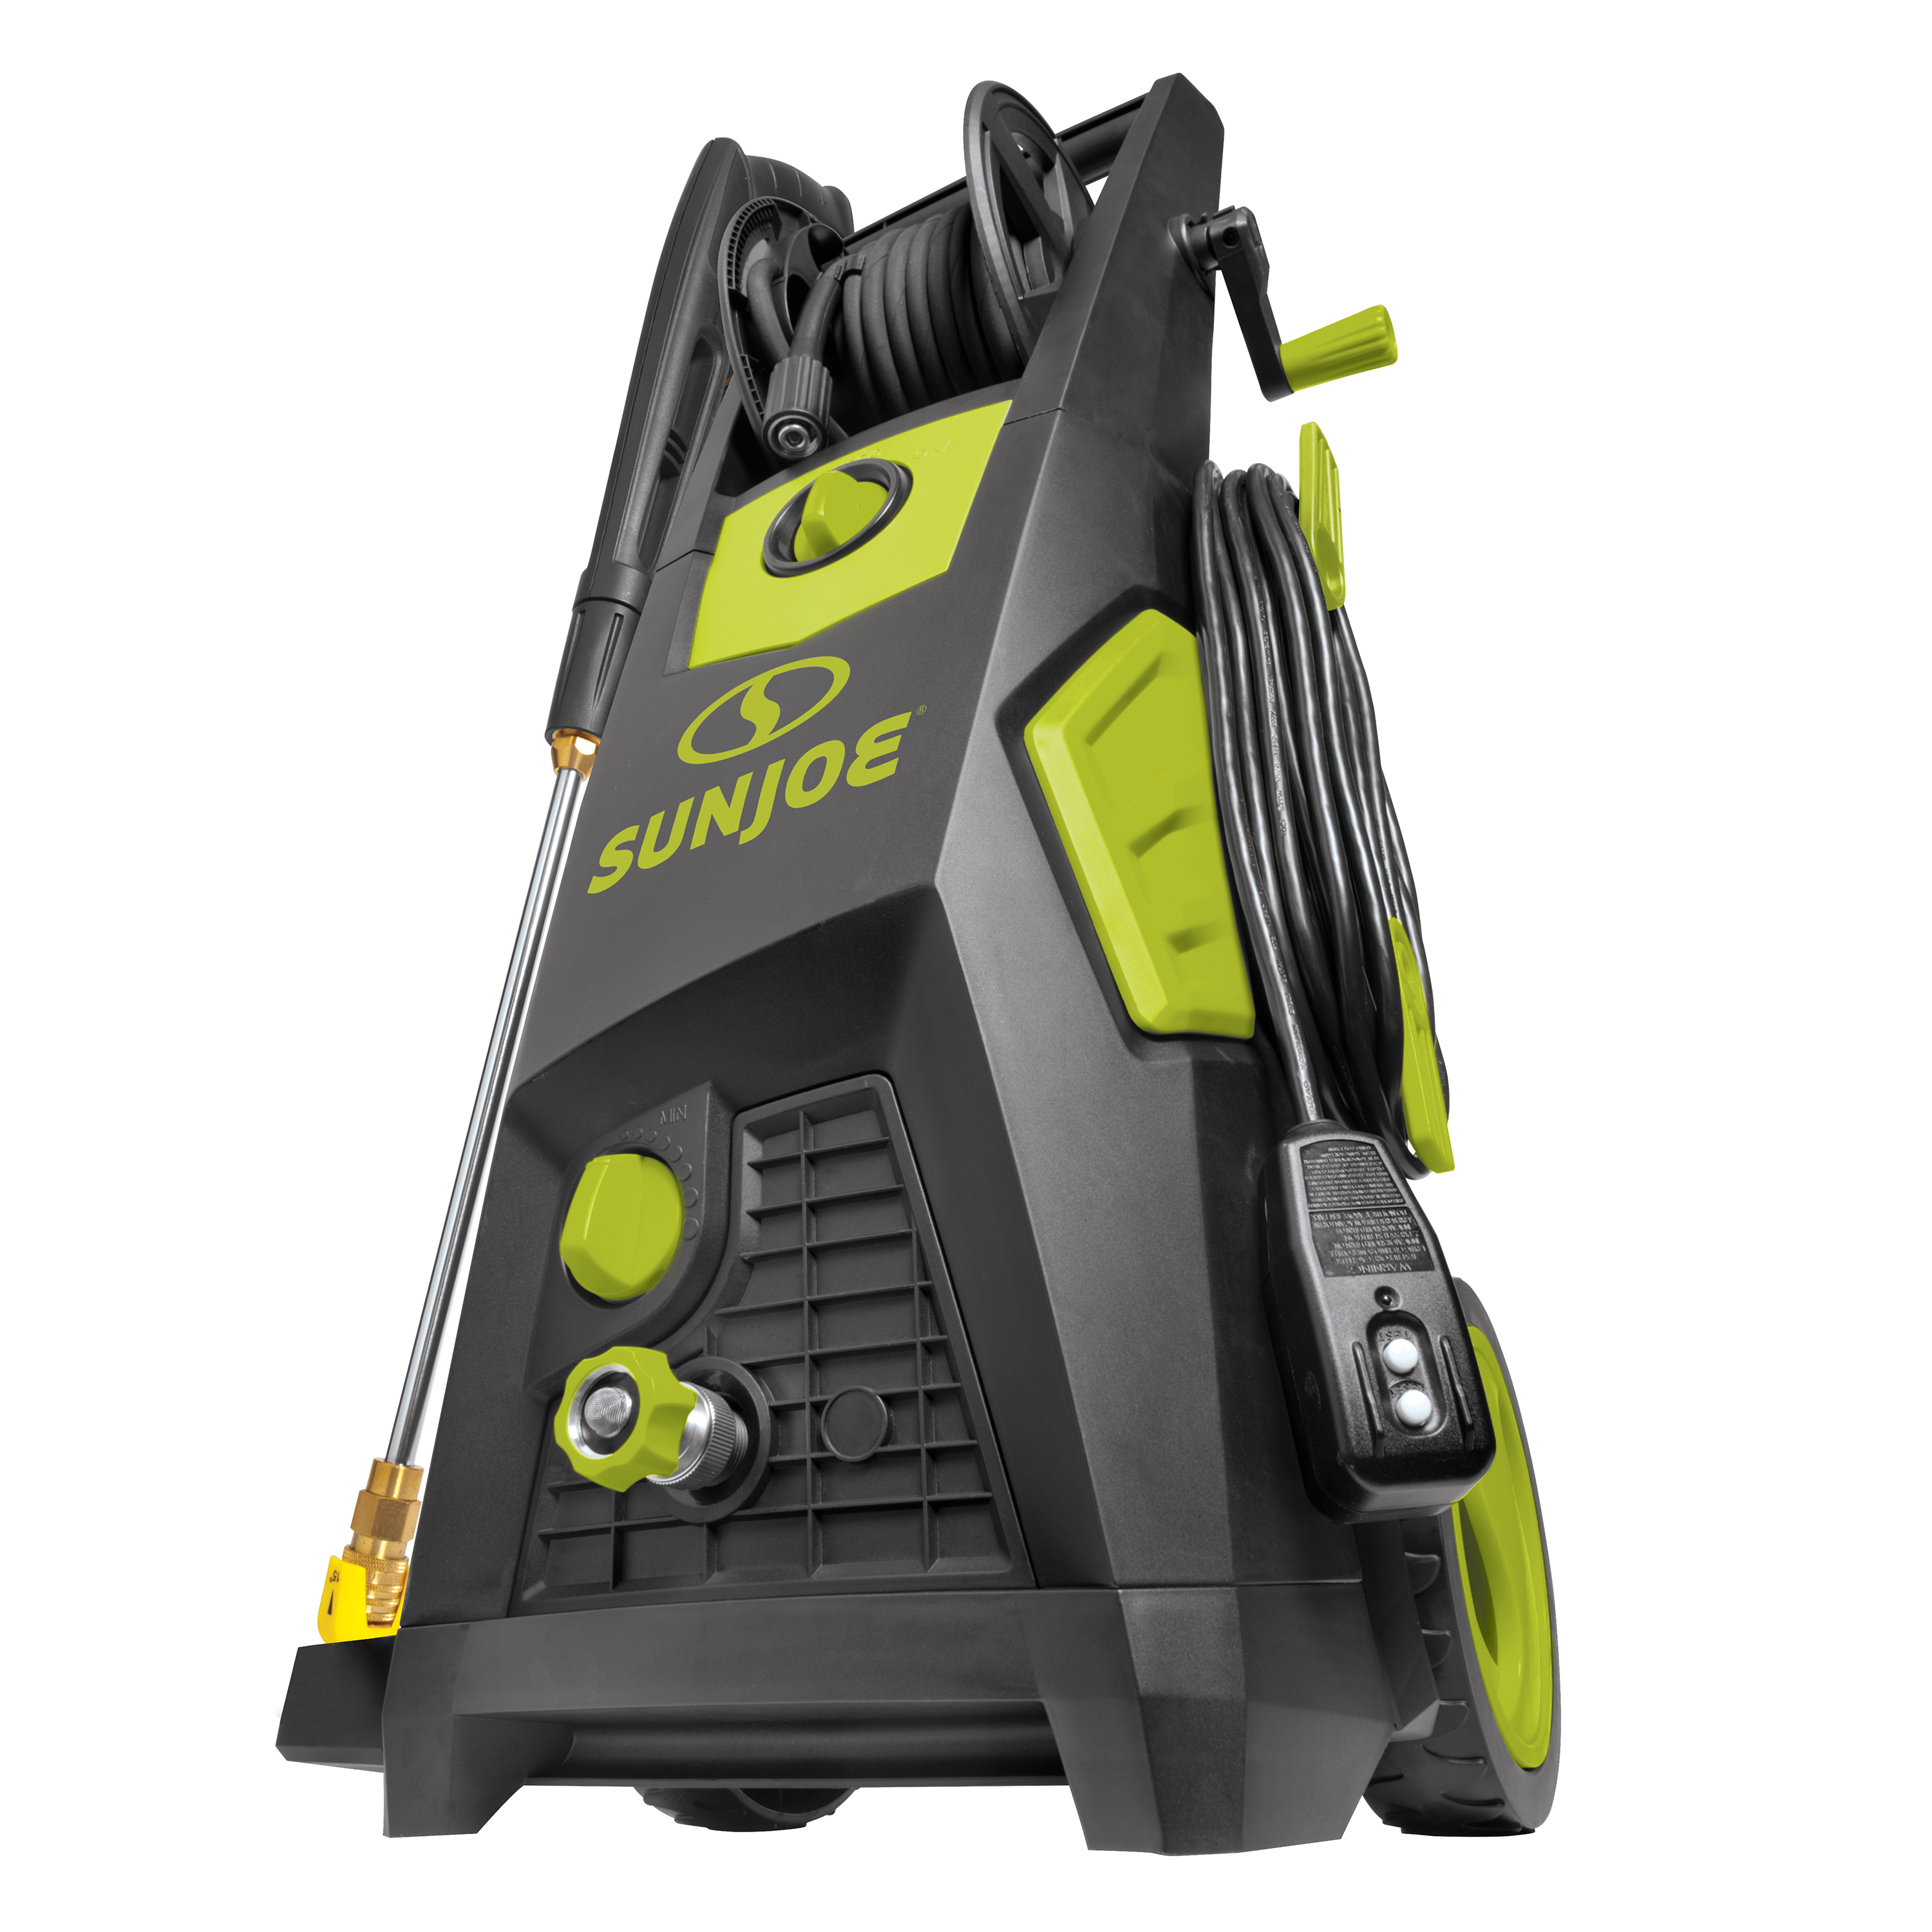 Sun Joe SPX3501 Brushless Induction Electric Pressure Washer | 2300-PSI MAX | 1.48 GPM | Hose Reel